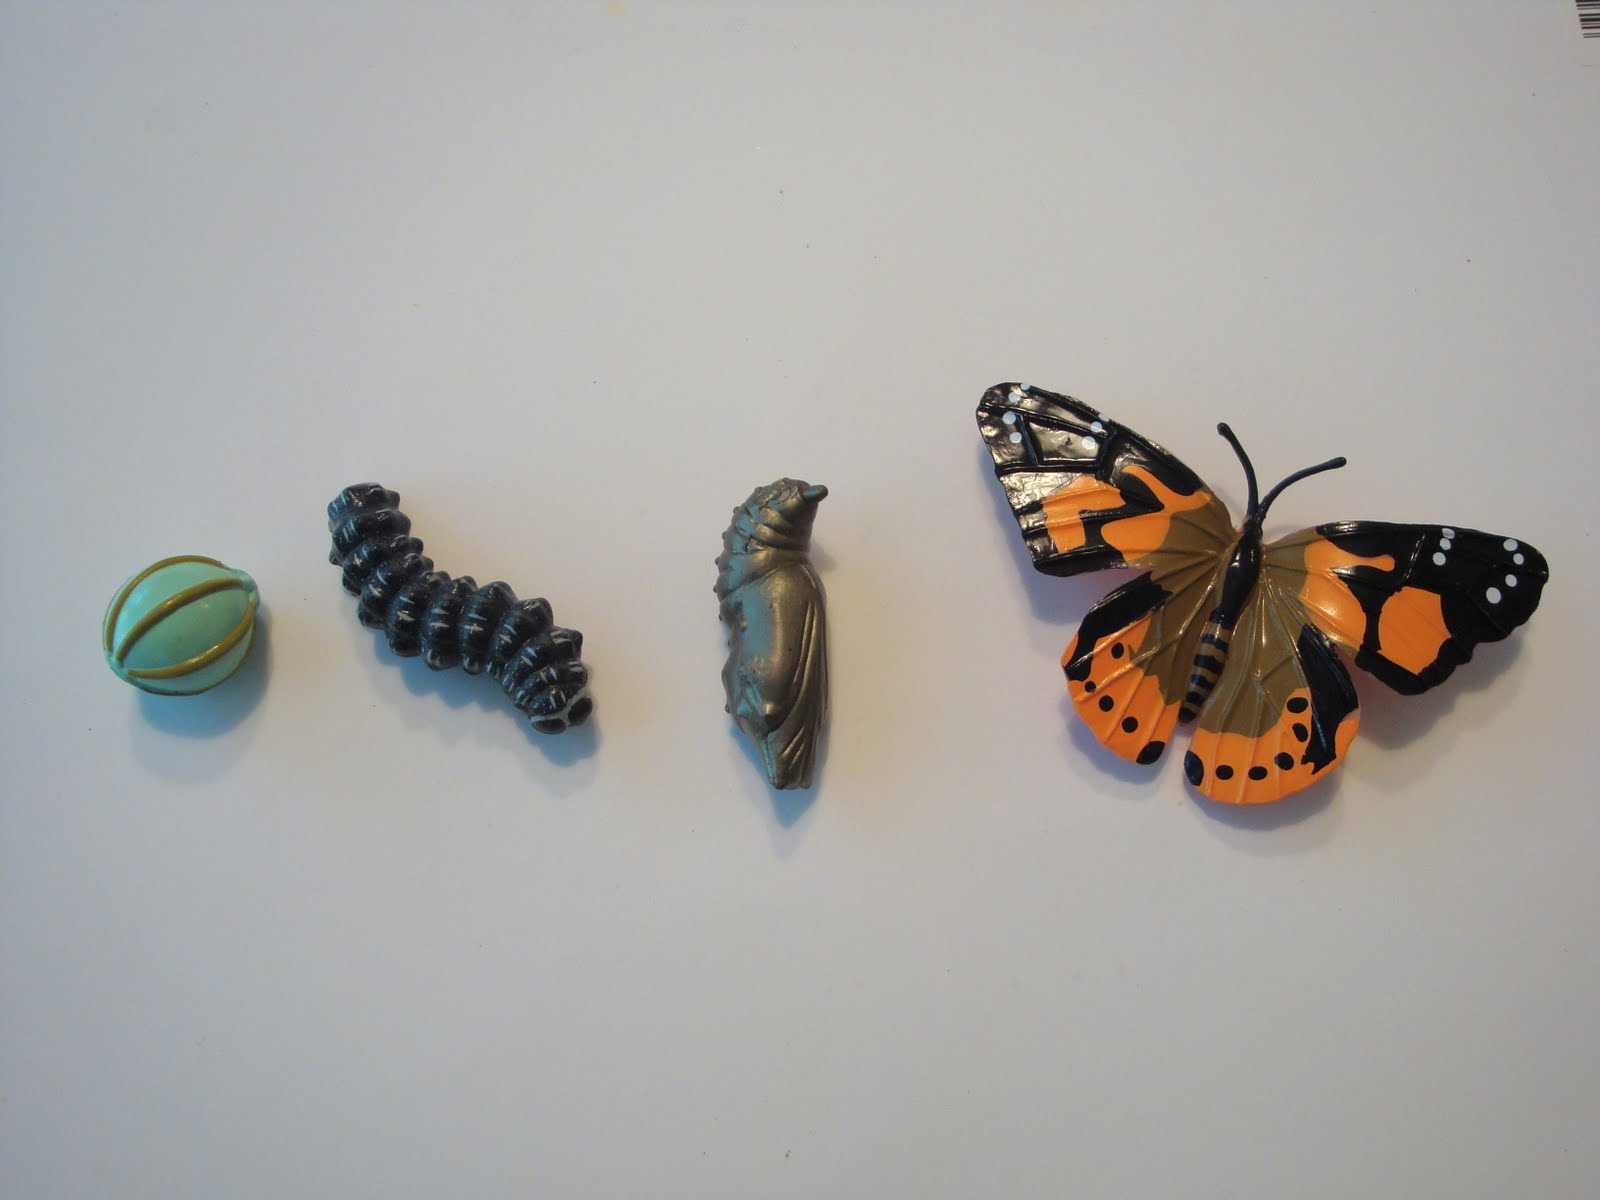 Funny painted lady butterfly life - 84.0KB